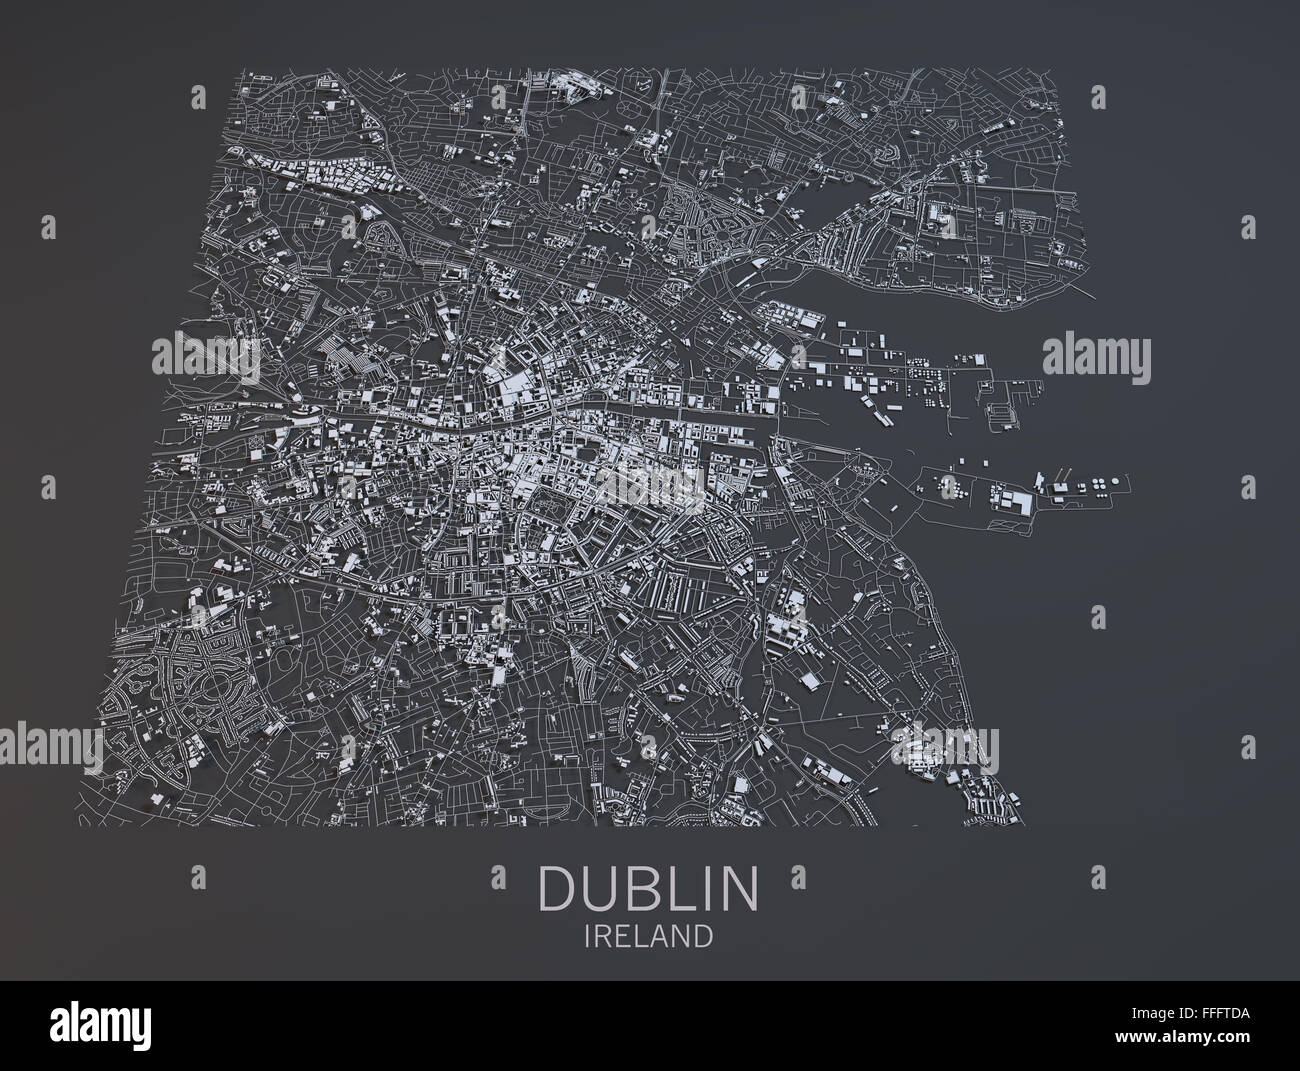 Satellite Map Of Ireland.Dublin Map Satellite View Ireland Stock Photo 95620150 Alamy